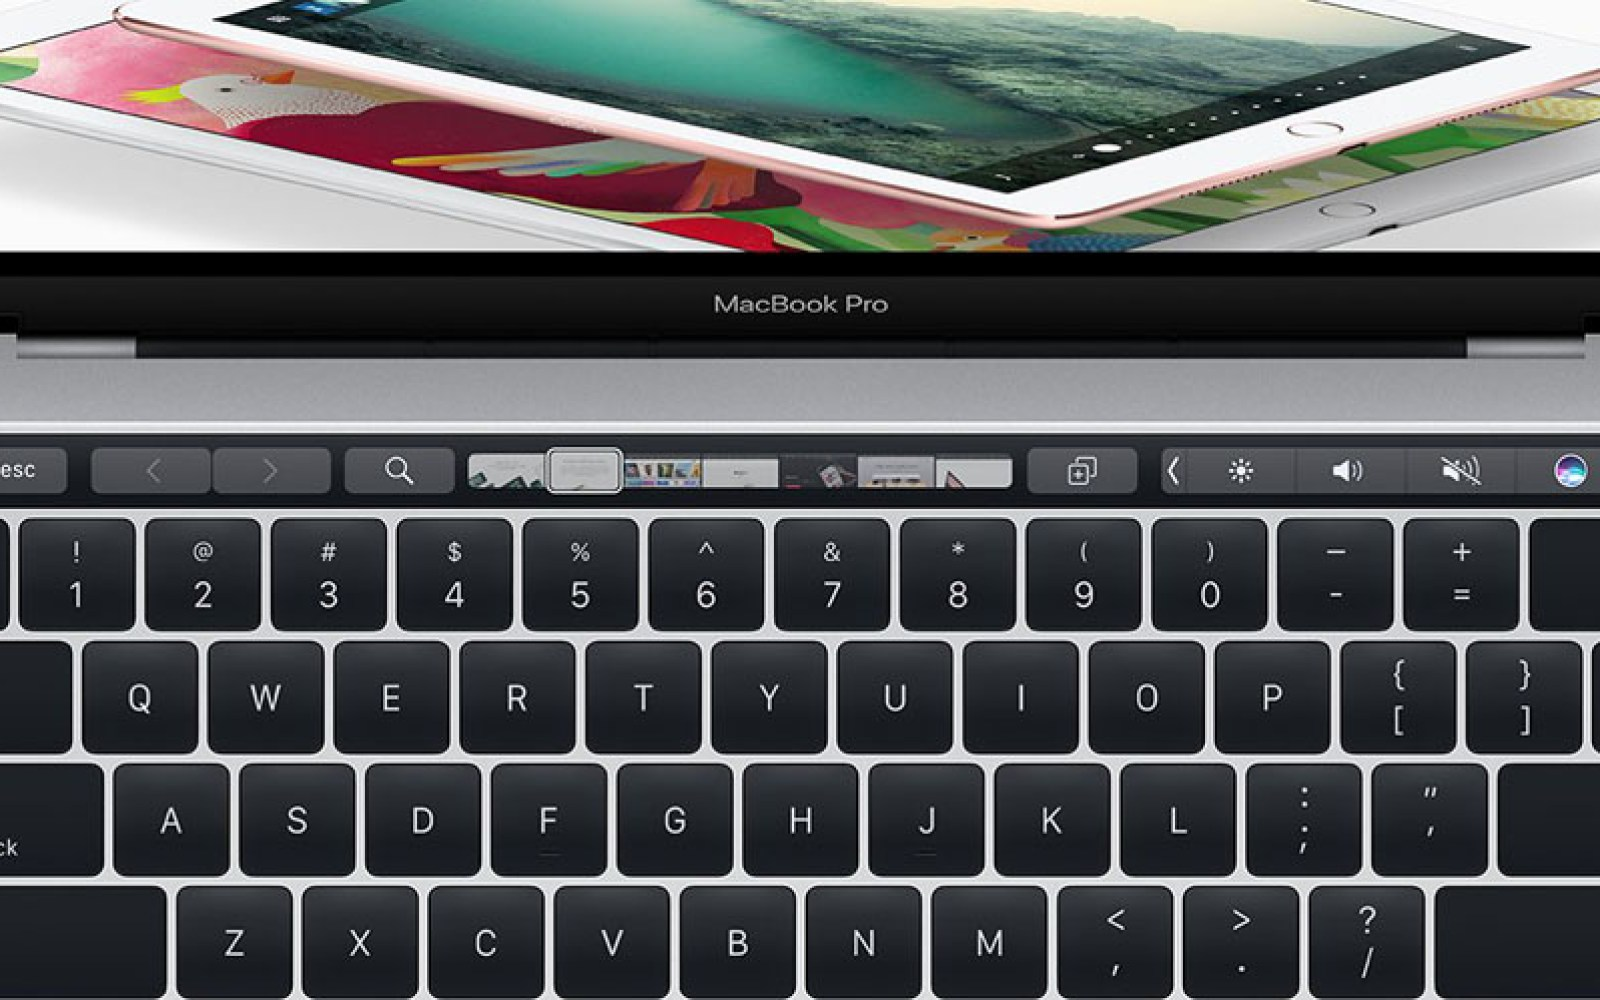 Jony Ive rejected touchscreen Mac, but working on things beyond the Touch Bar